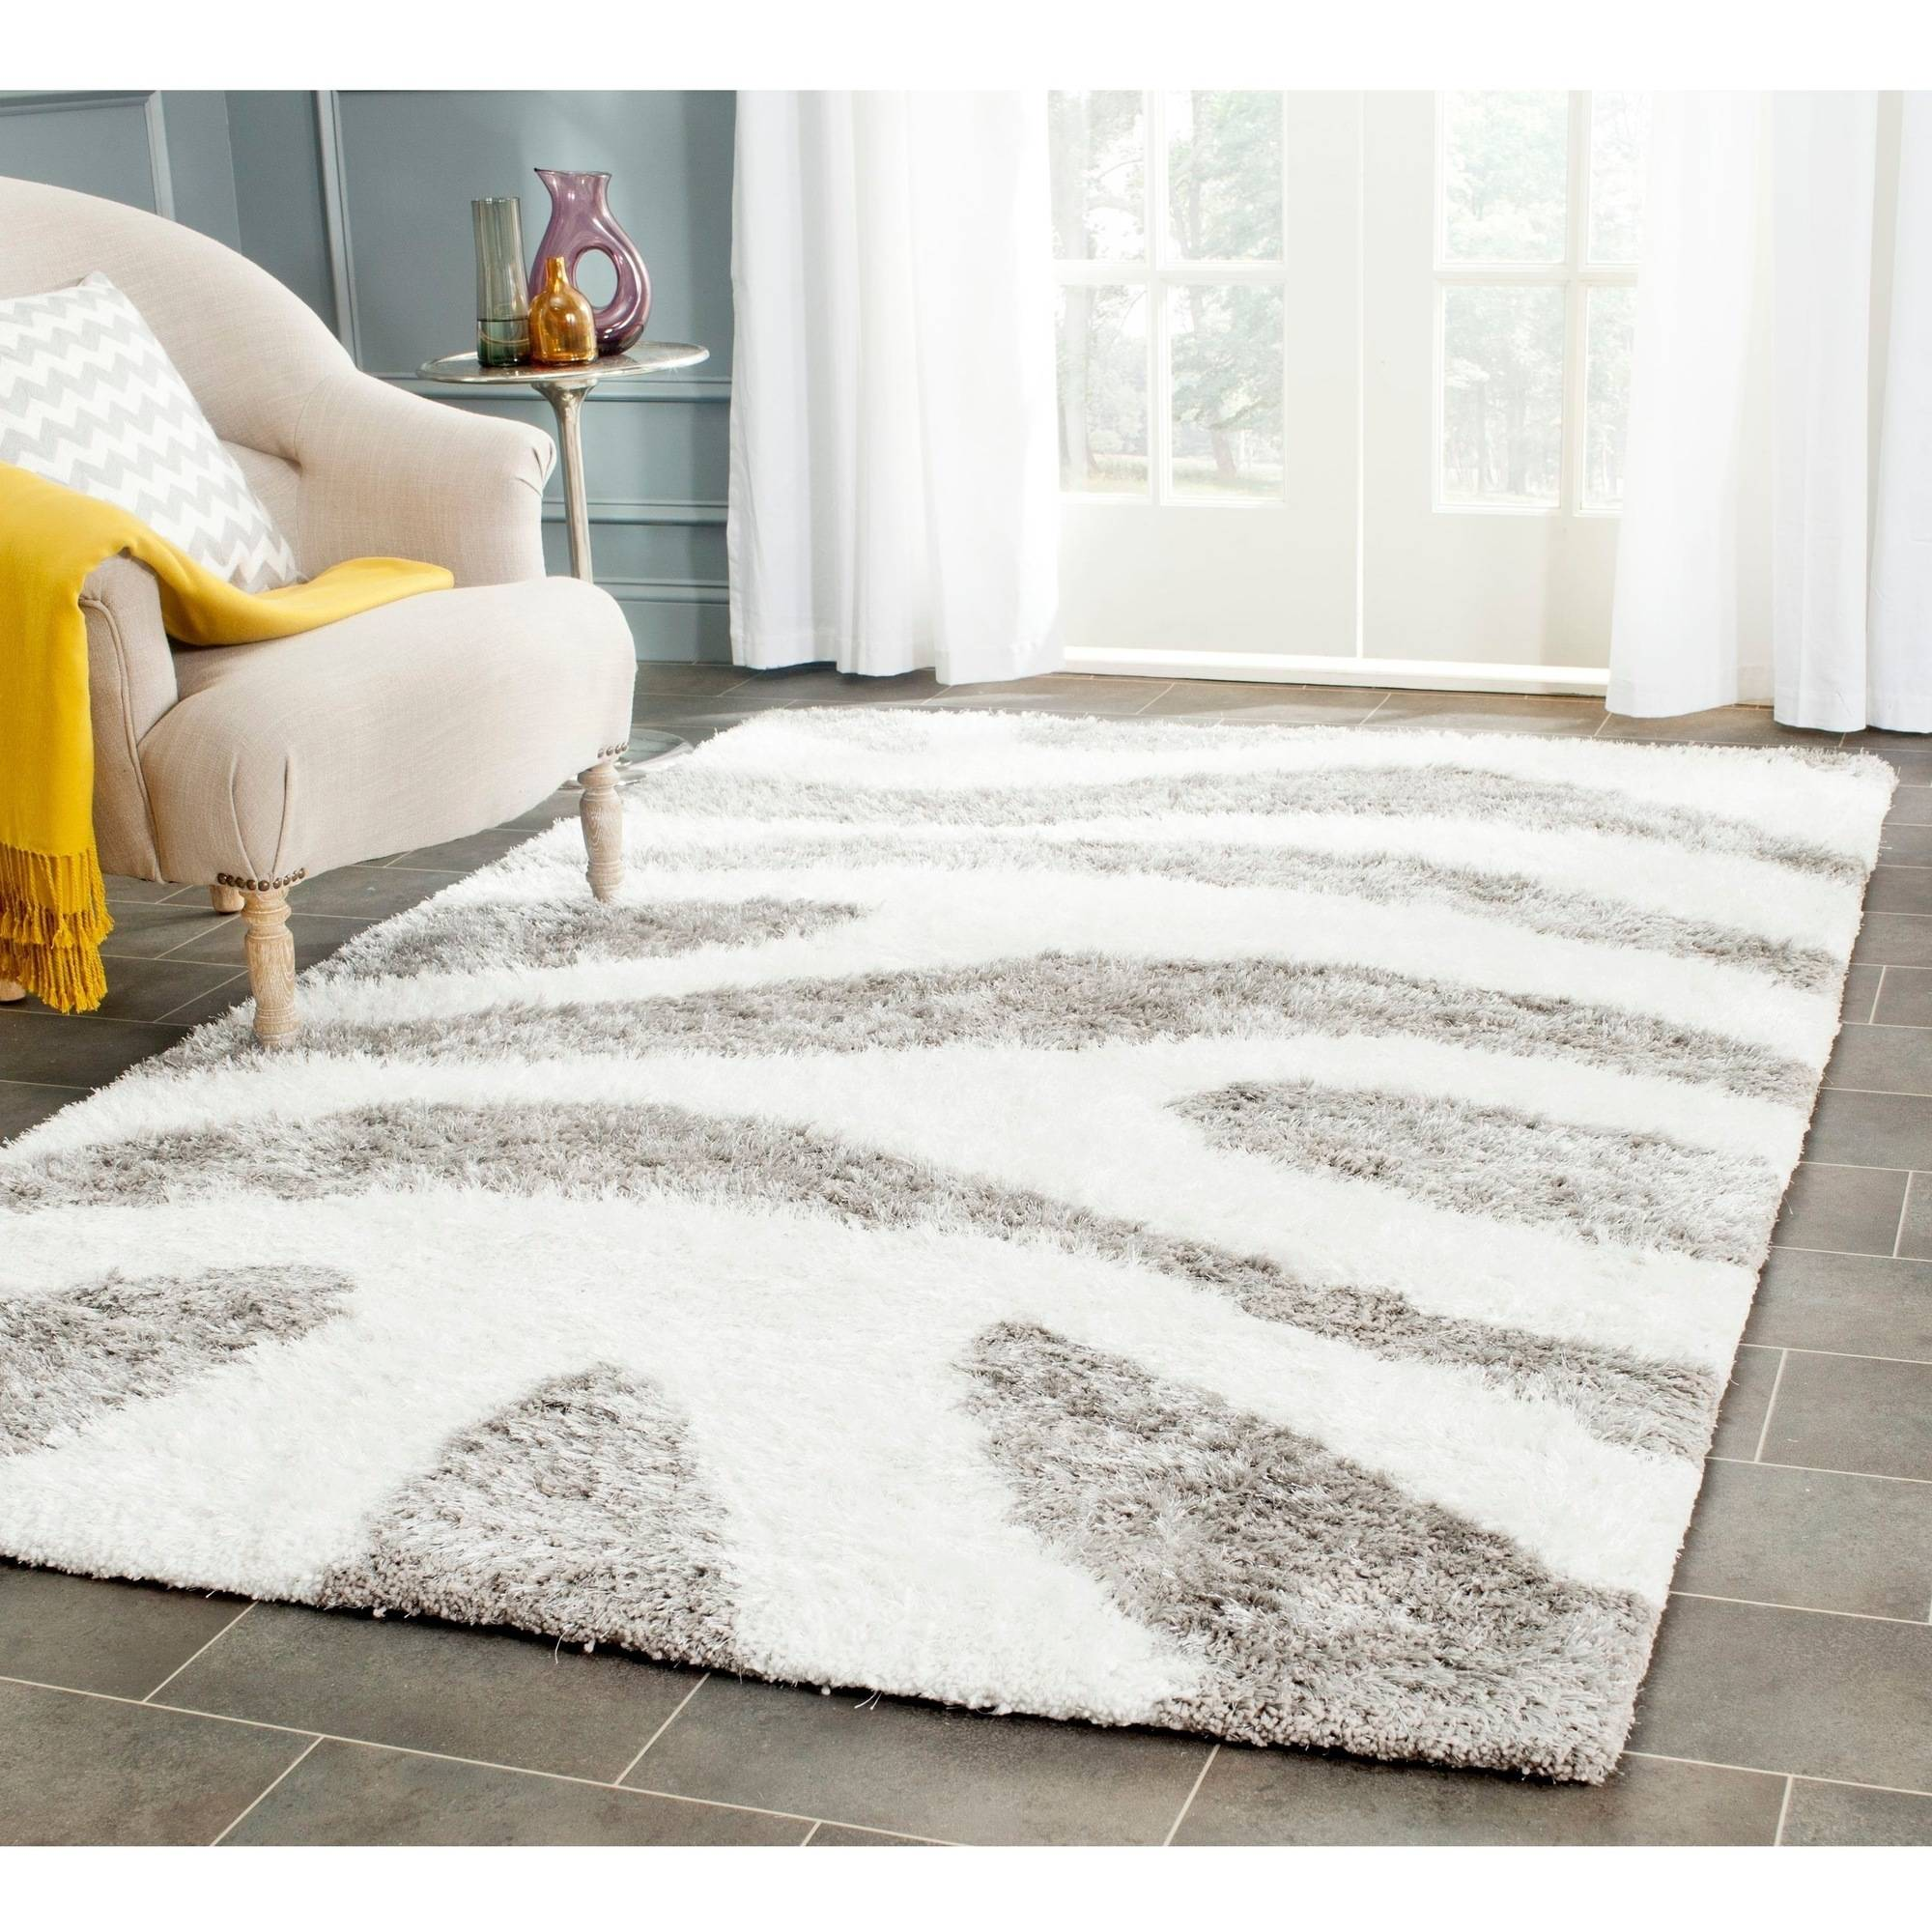 Safavieh Barcelona Calanthia Abstract Shag Area Rug or Runner